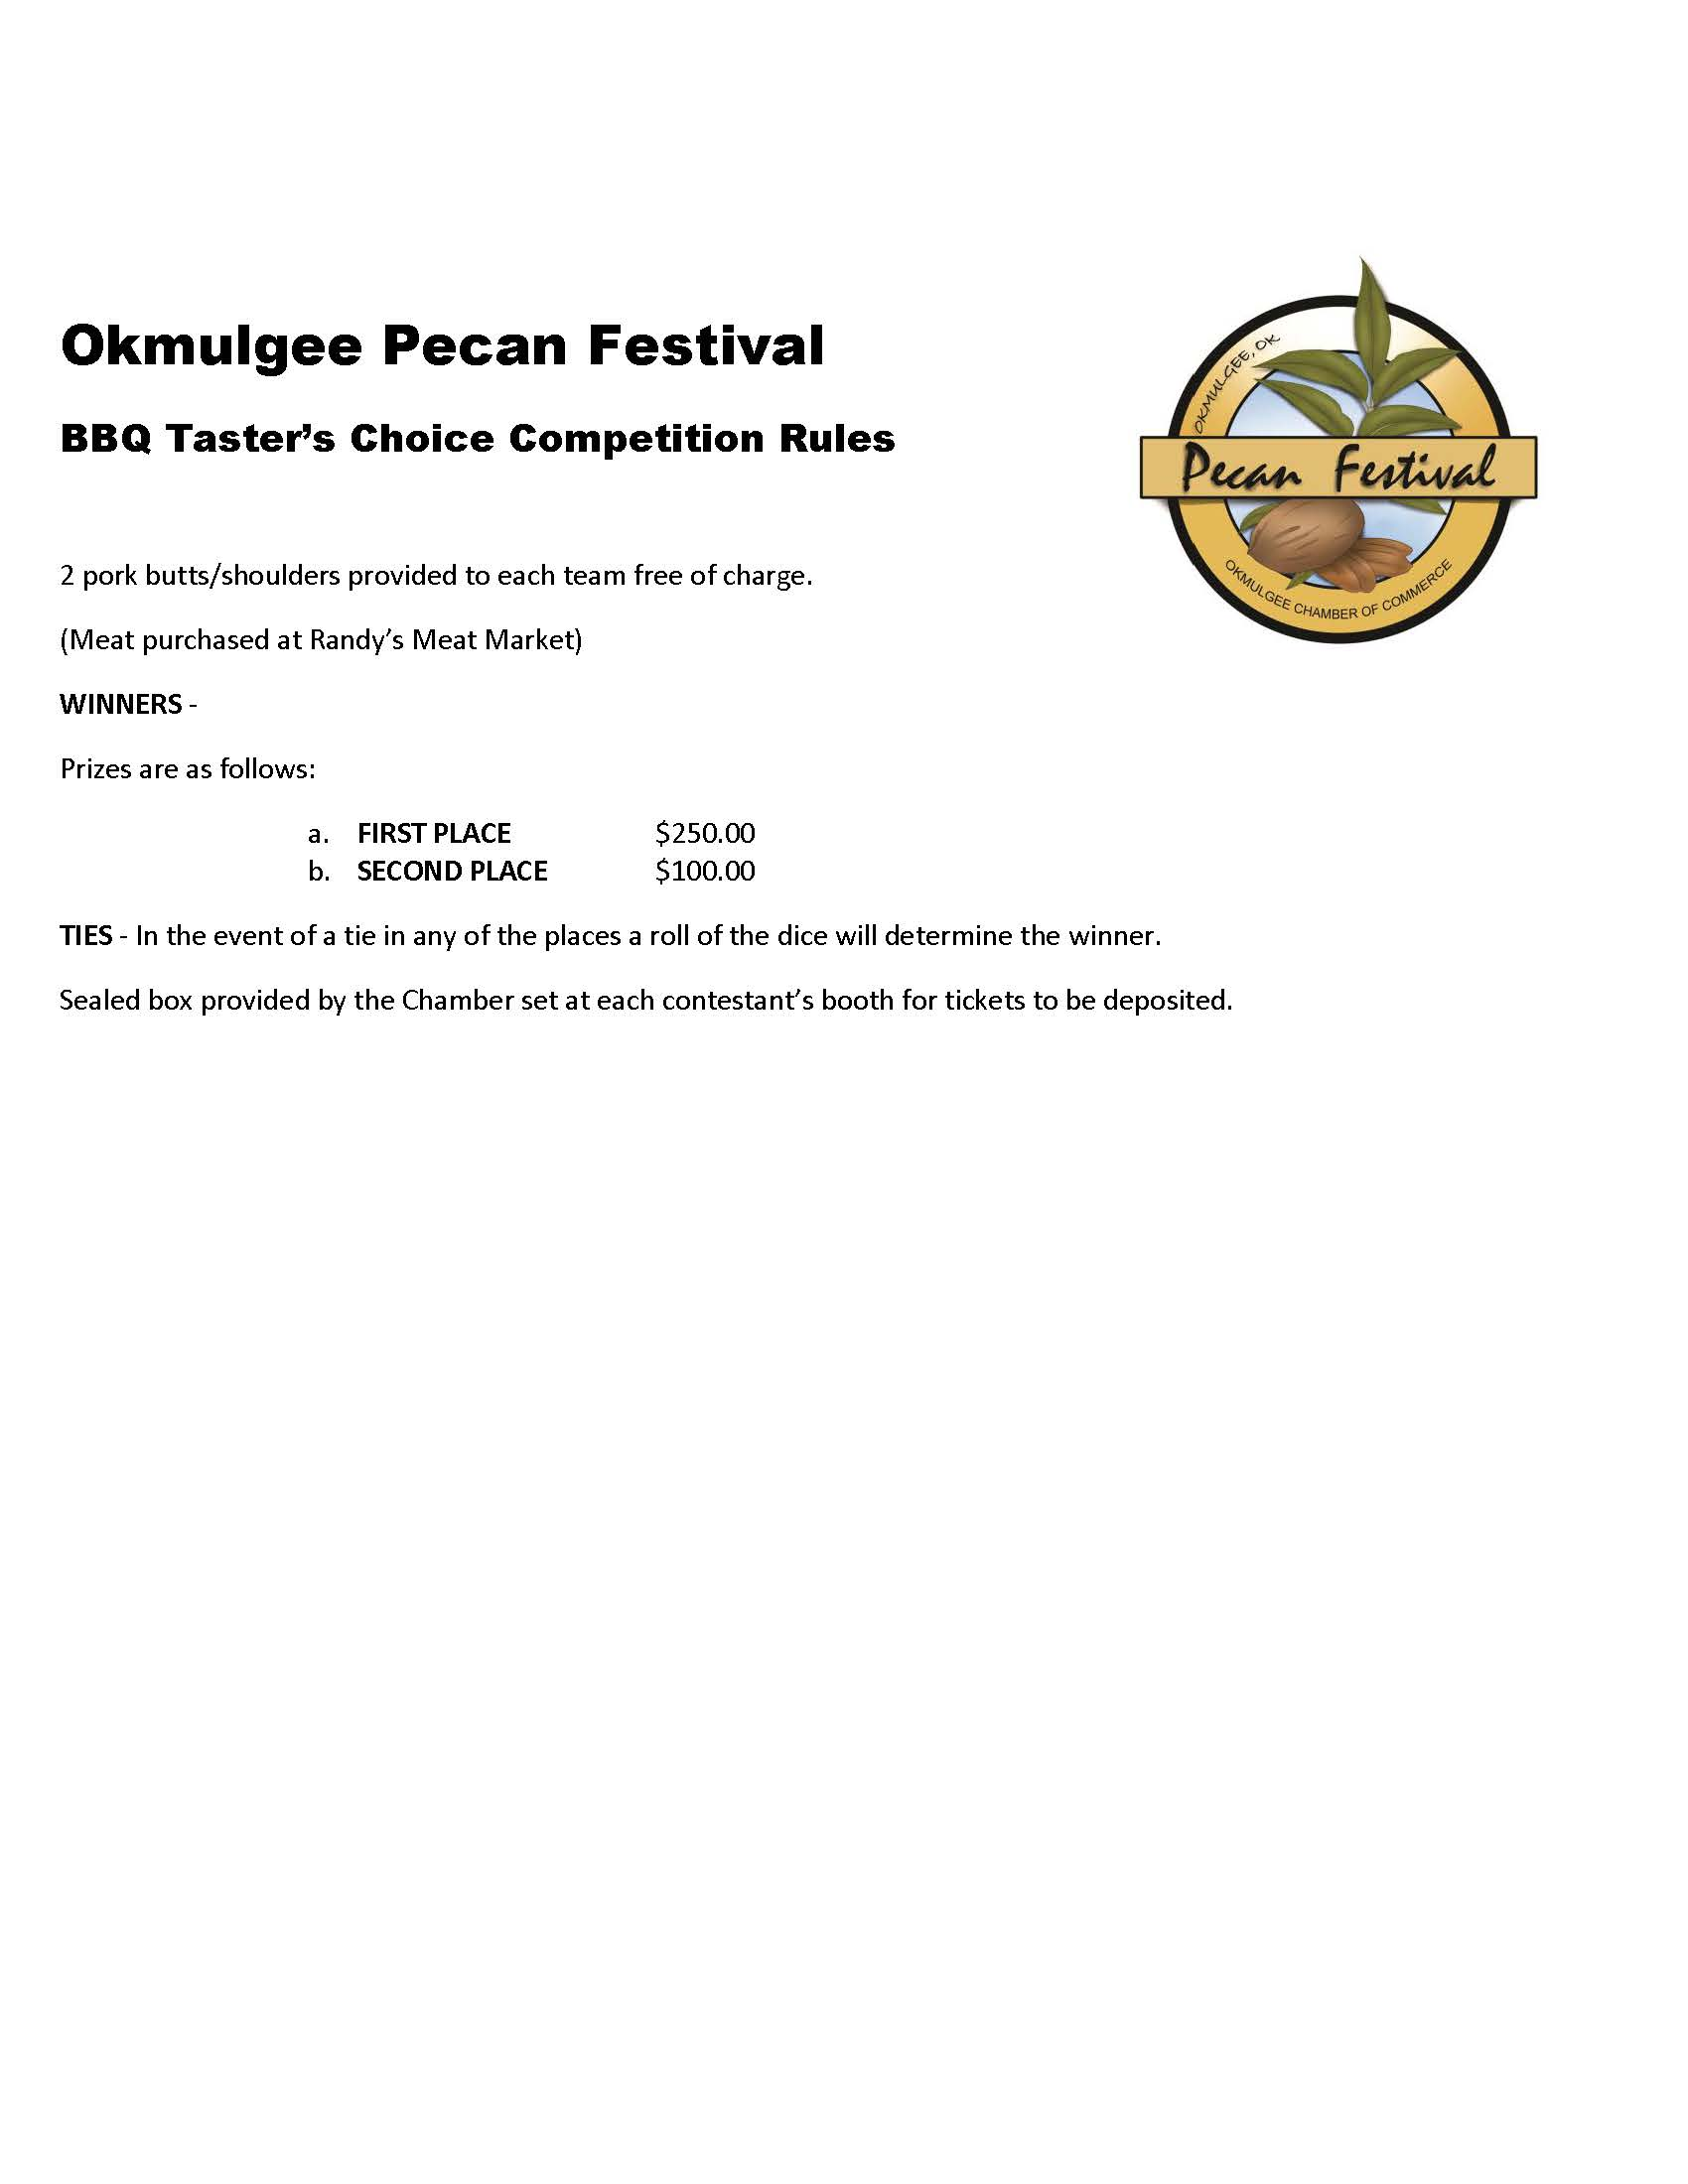 Pecan Festival BBQ Taster's Choice Competition Rules.jpg